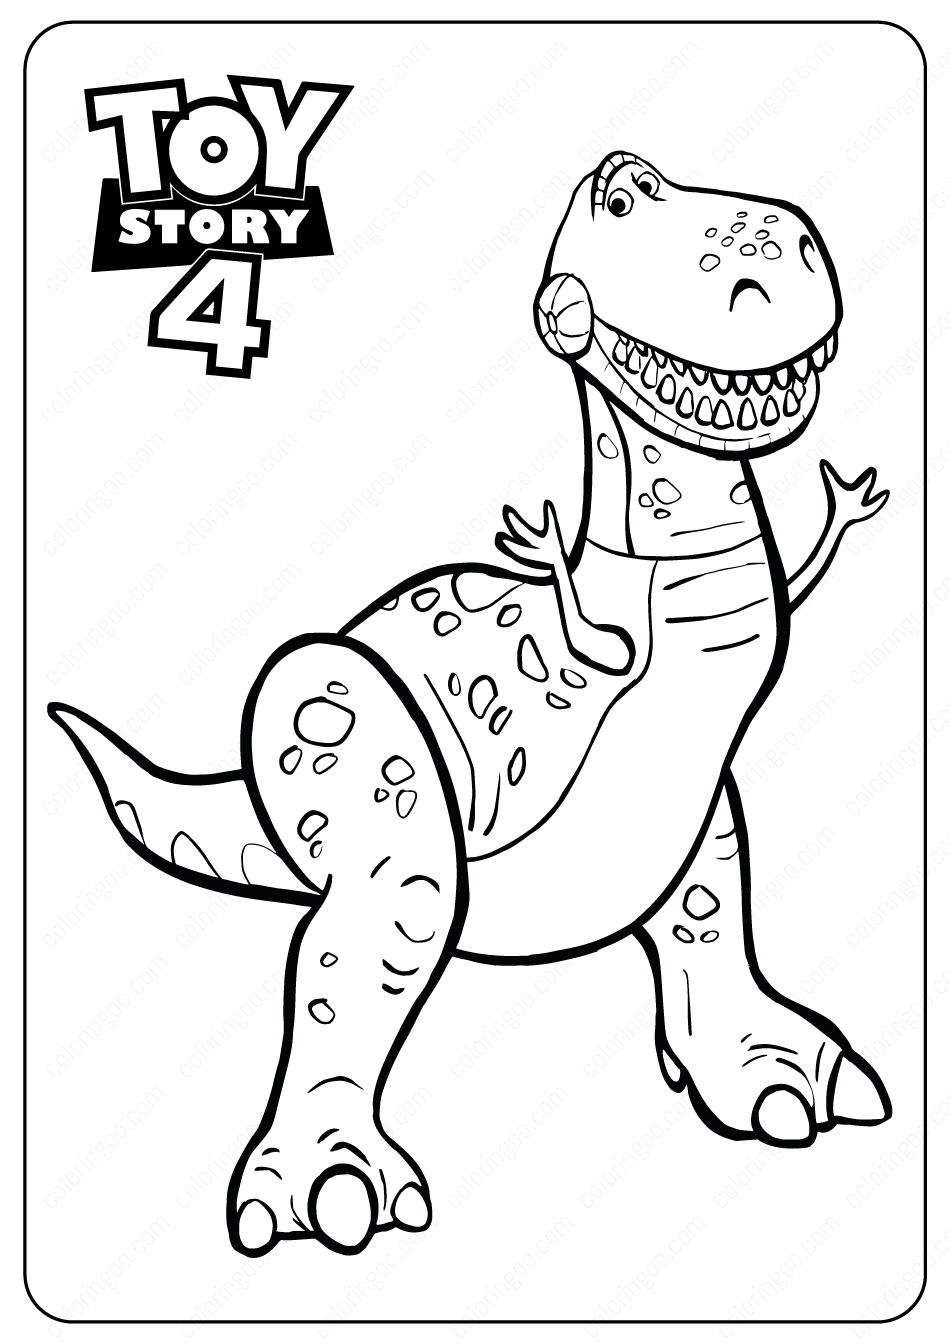 coloring book for kids pdf free printable toy story rex pdf coloring pages coloring book for kids pdf